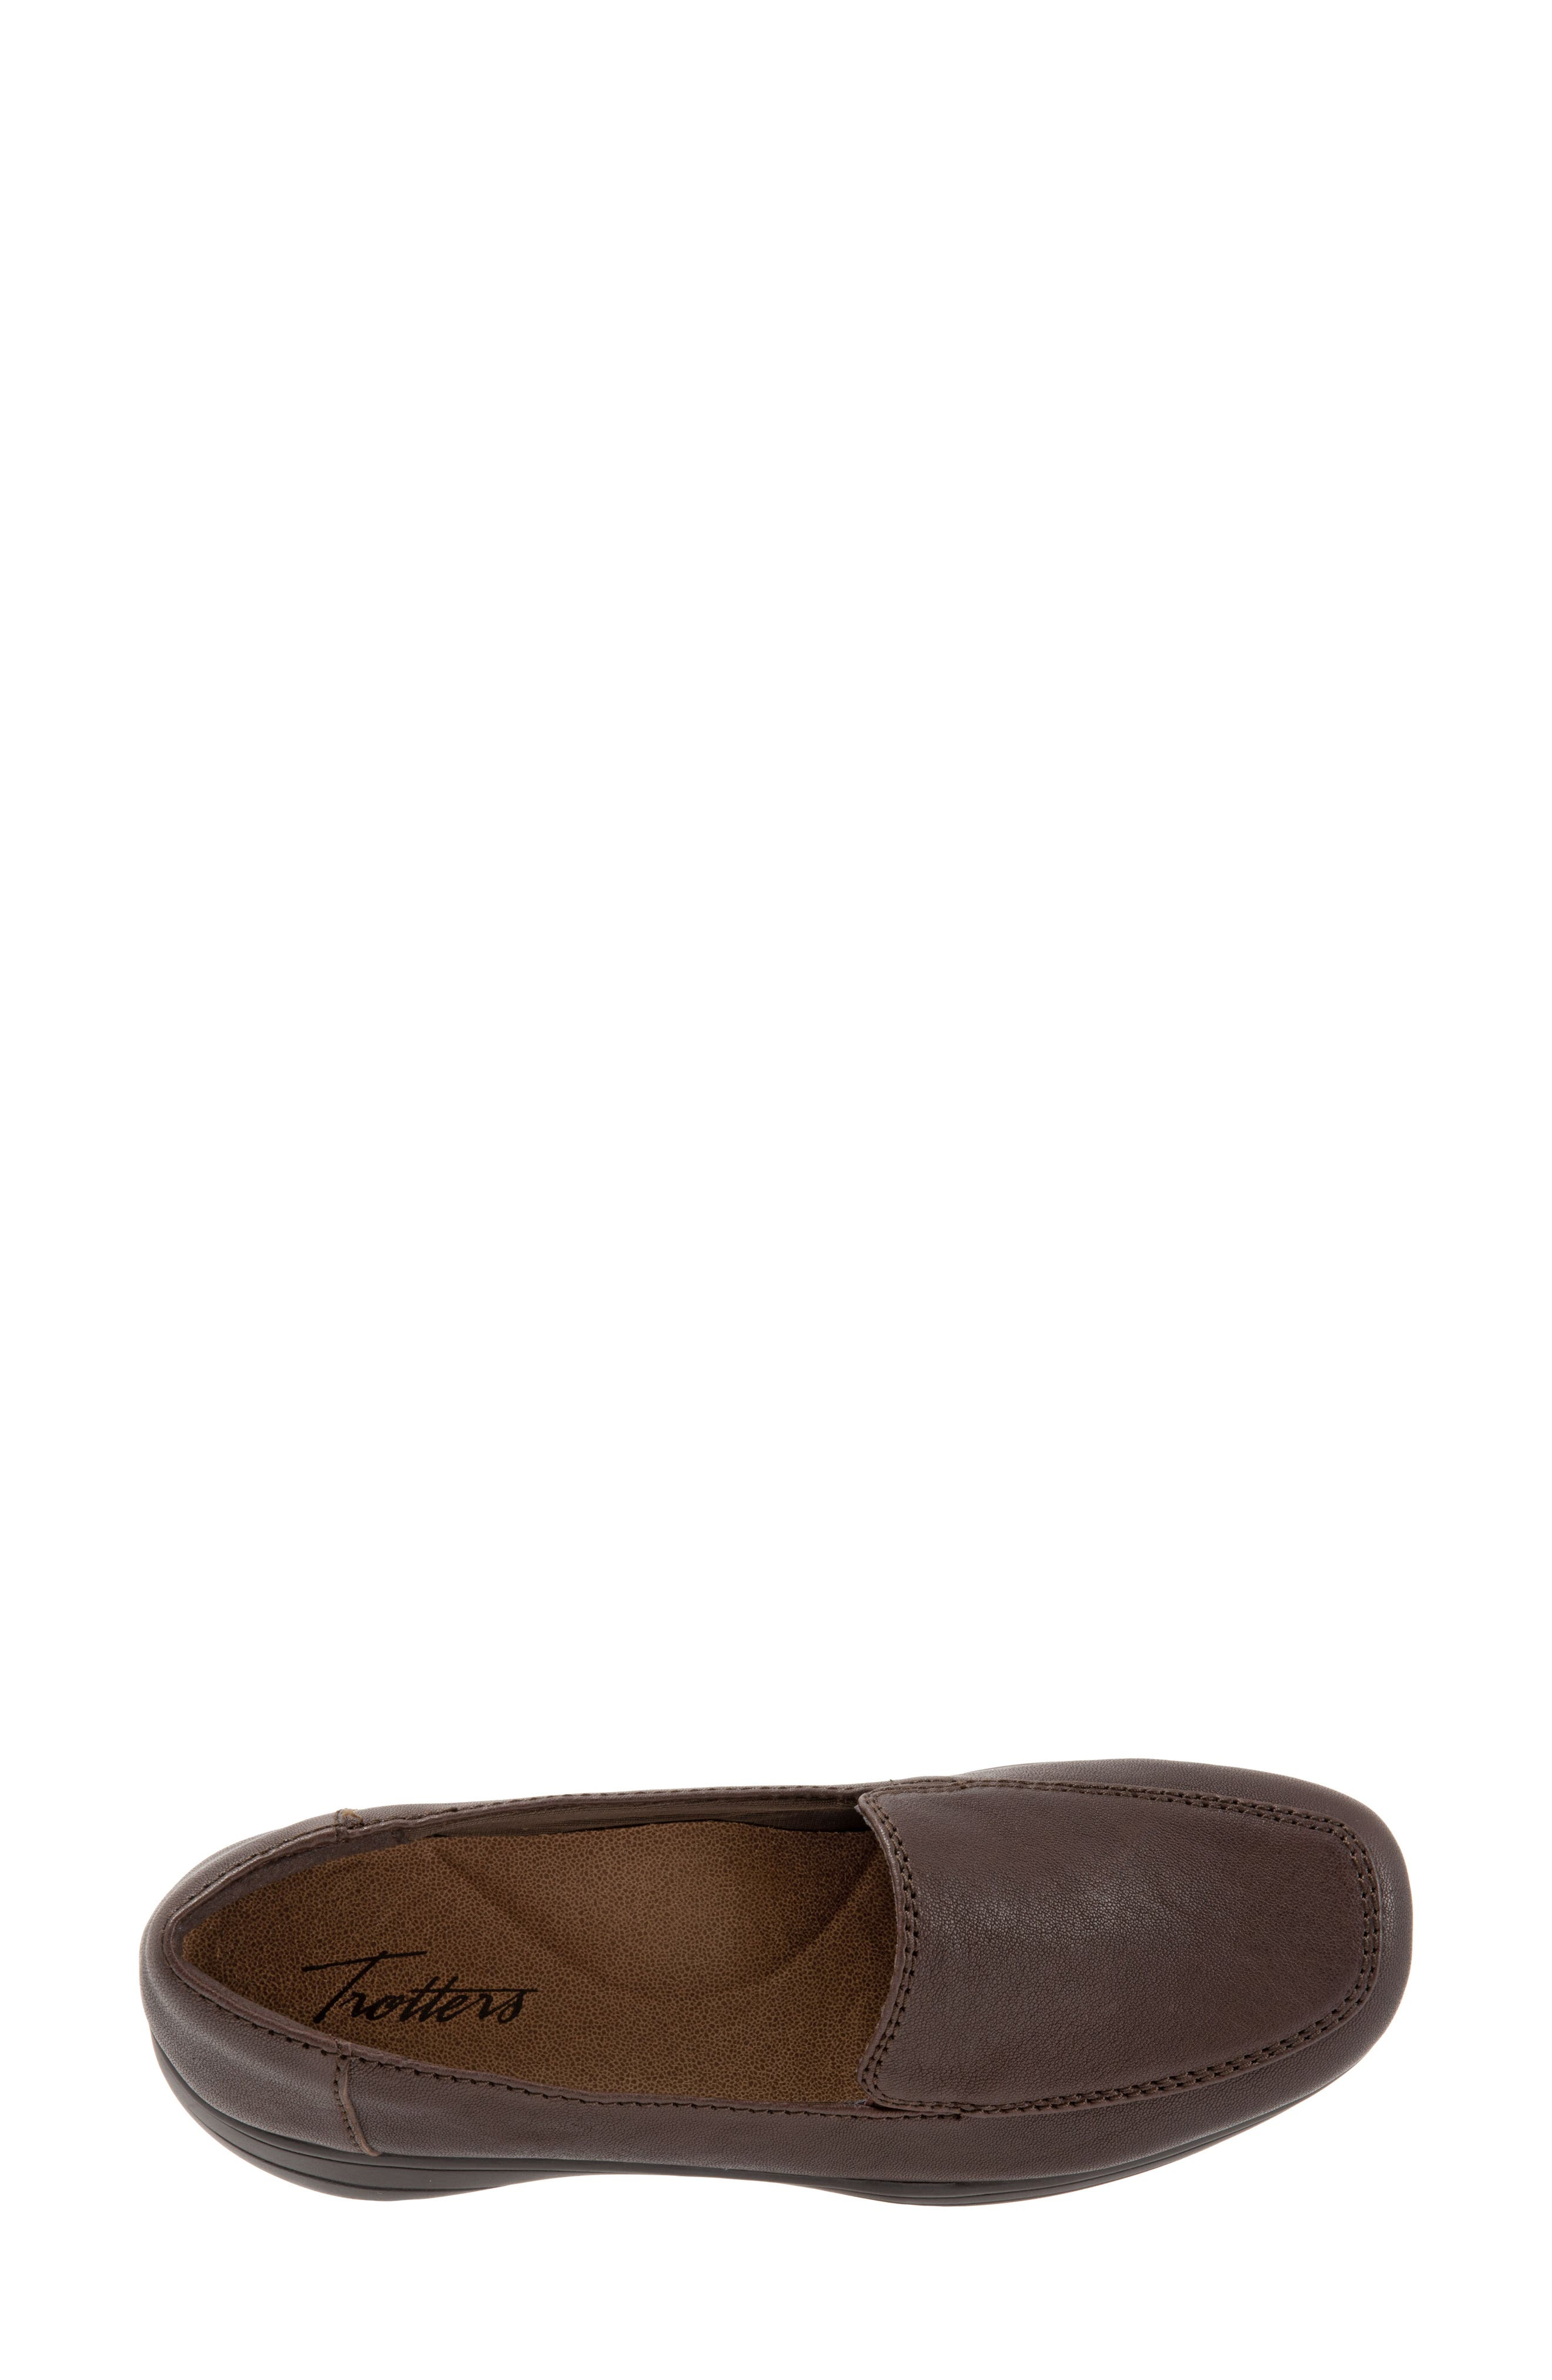 Jacob Loafer,                             Alternate thumbnail 5, color,                             DARK BROWN LEATHER